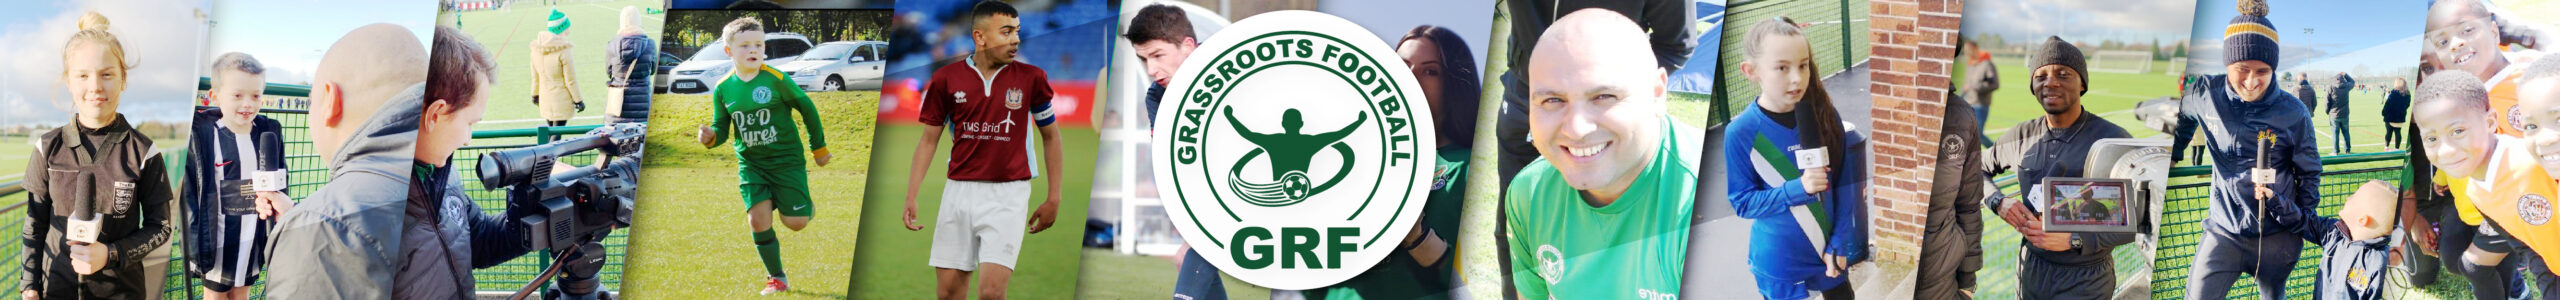 Team Grassroots Football GRF